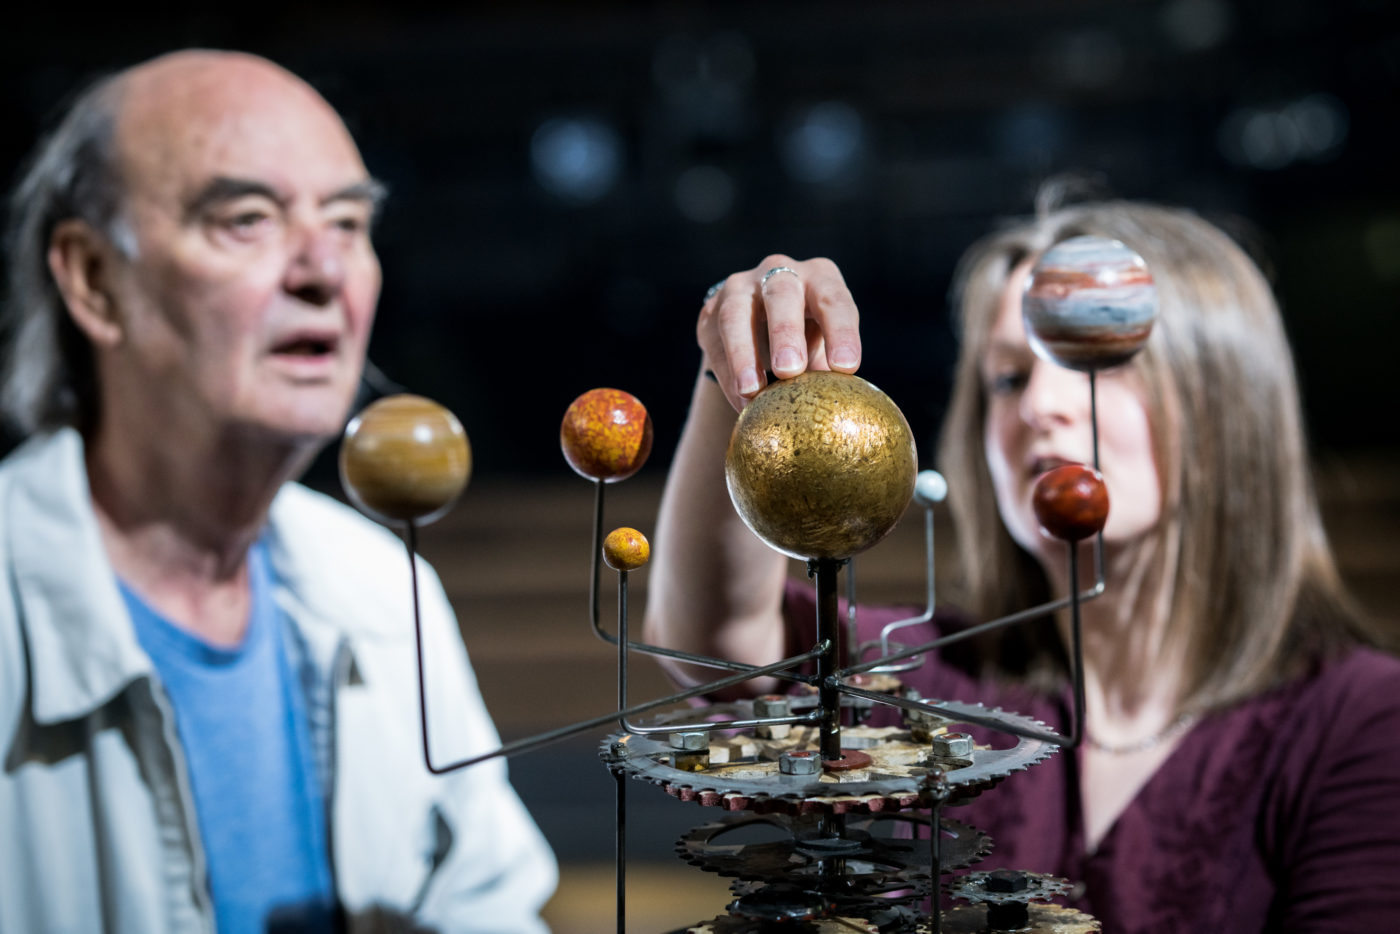 A man and a woman explore a model of the solar system, approximately 50 cm tall: a golden sphere in the centre represents the sun, with smaller spheres representing planets surrounding it. The planets are supported on wires, at varying distances from the sun, and all are connected to a system of cogs at the base that allow the planets to circle round the sun.